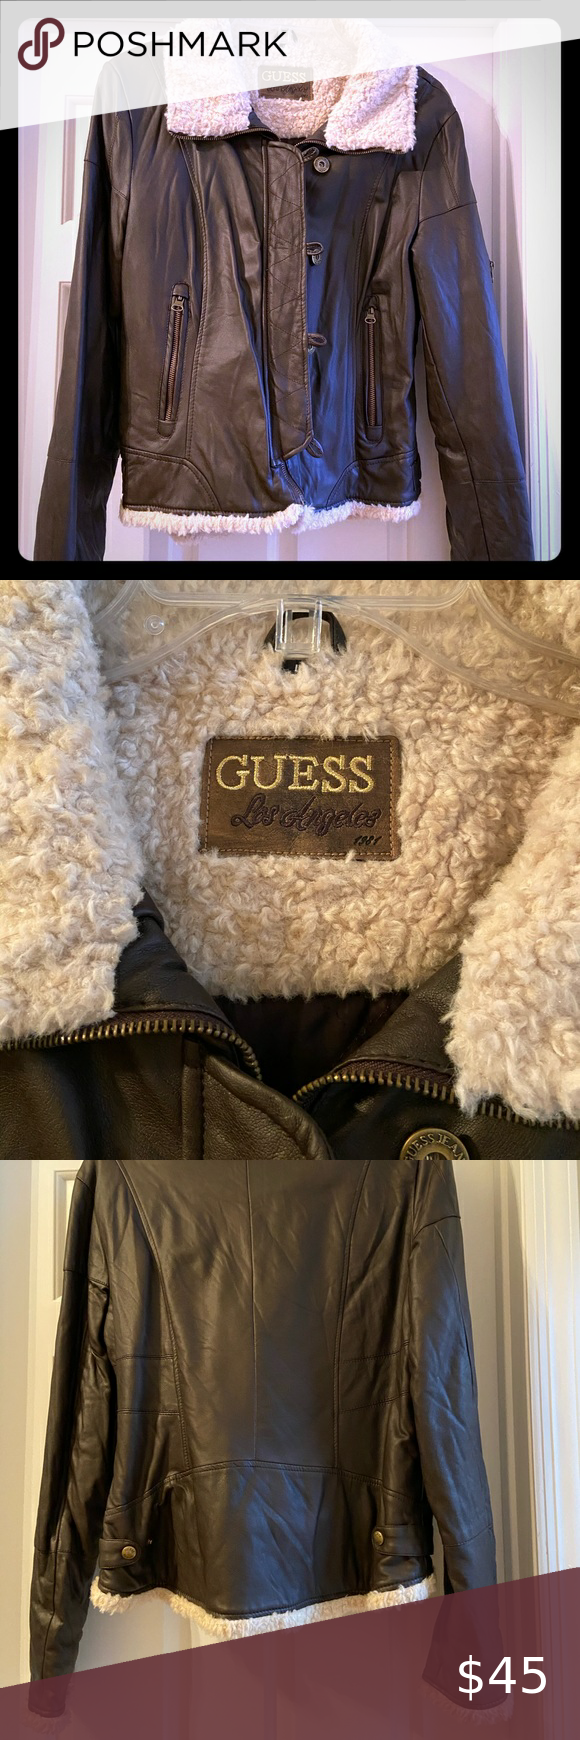 Guess Brown Leather Jacket With Shearling Accents In 2021 Leather Jacket Brown Faux Leather Jacket Brown Leather Jacket [ 1740 x 580 Pixel ]